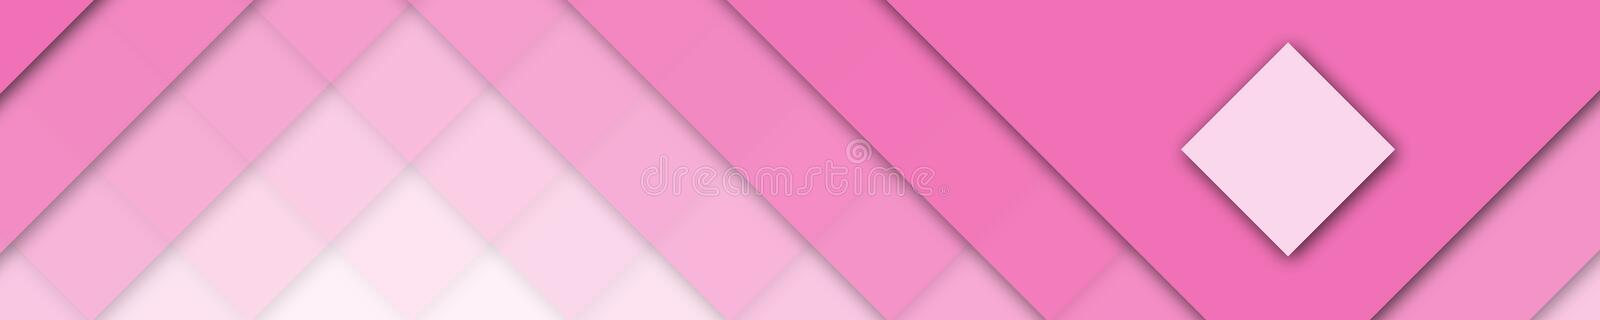 Elegant banner pink and white colors for website royalty free stock photography